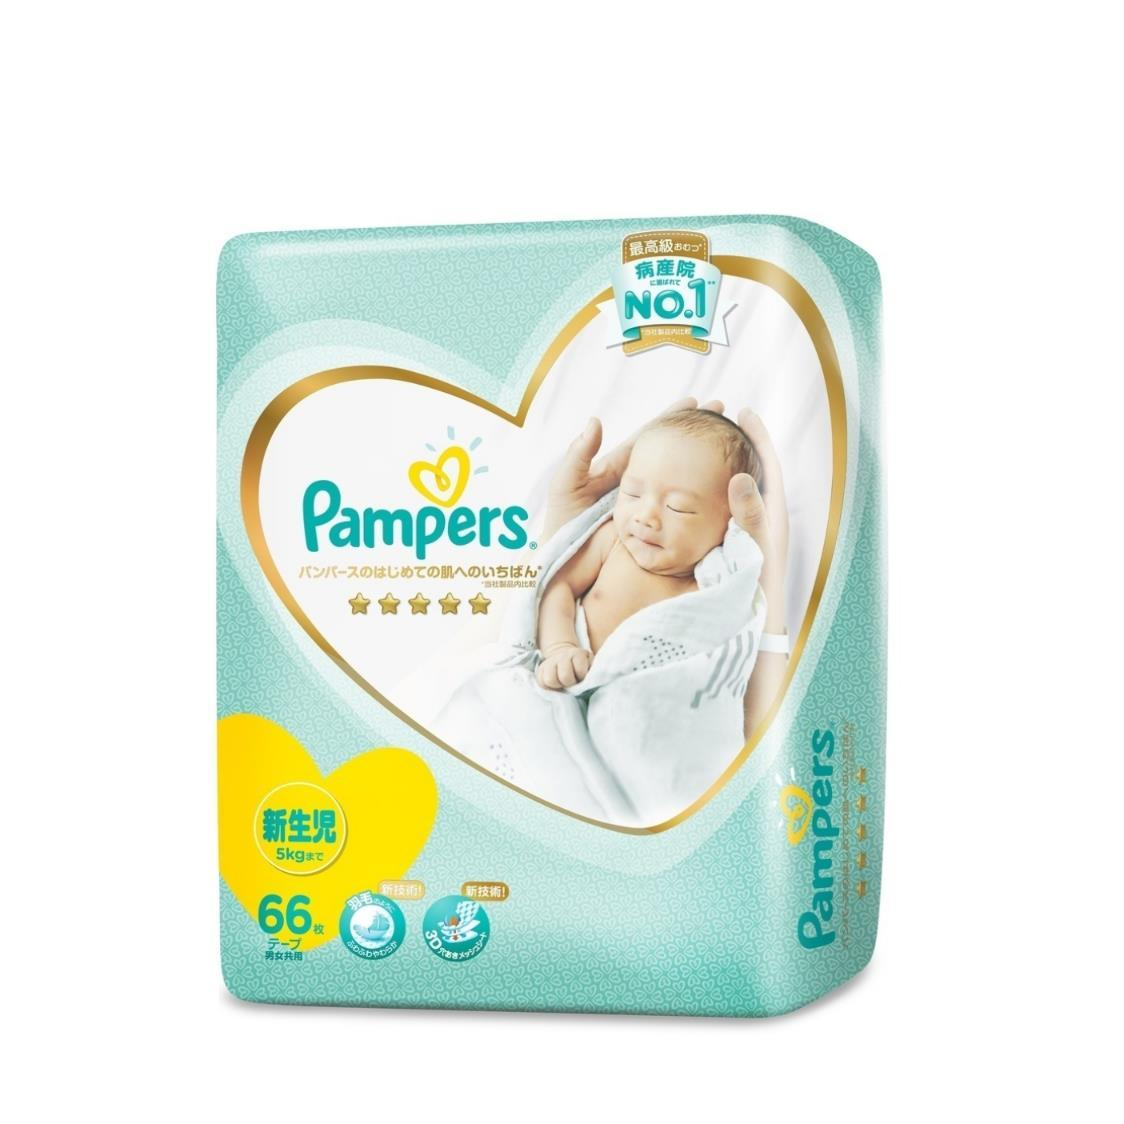 Pampers Premium Care Diapers NB 66s up to 5kg